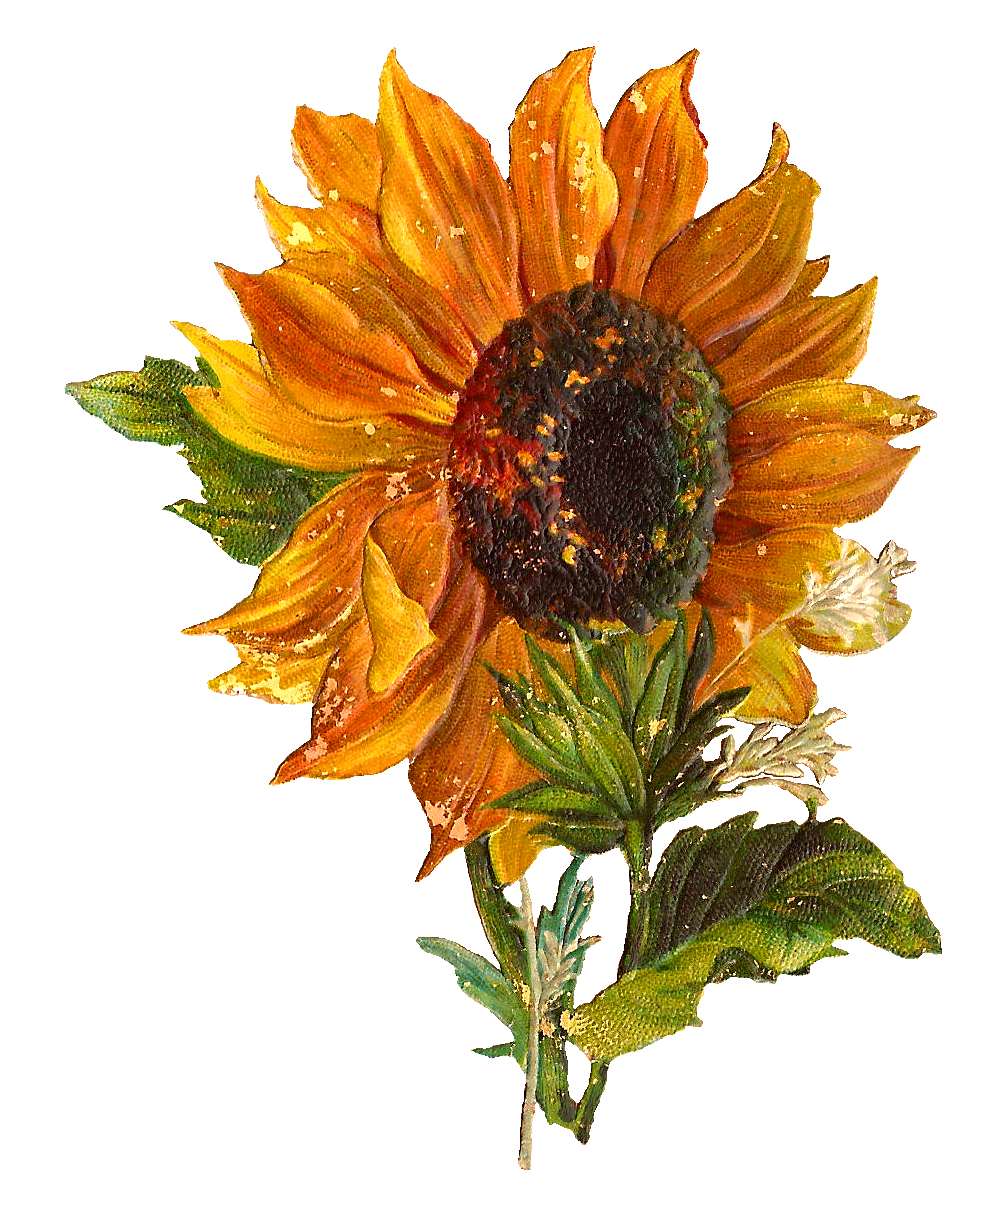 Antique Images: Digital Stock Sunflower Artwork Flower ...